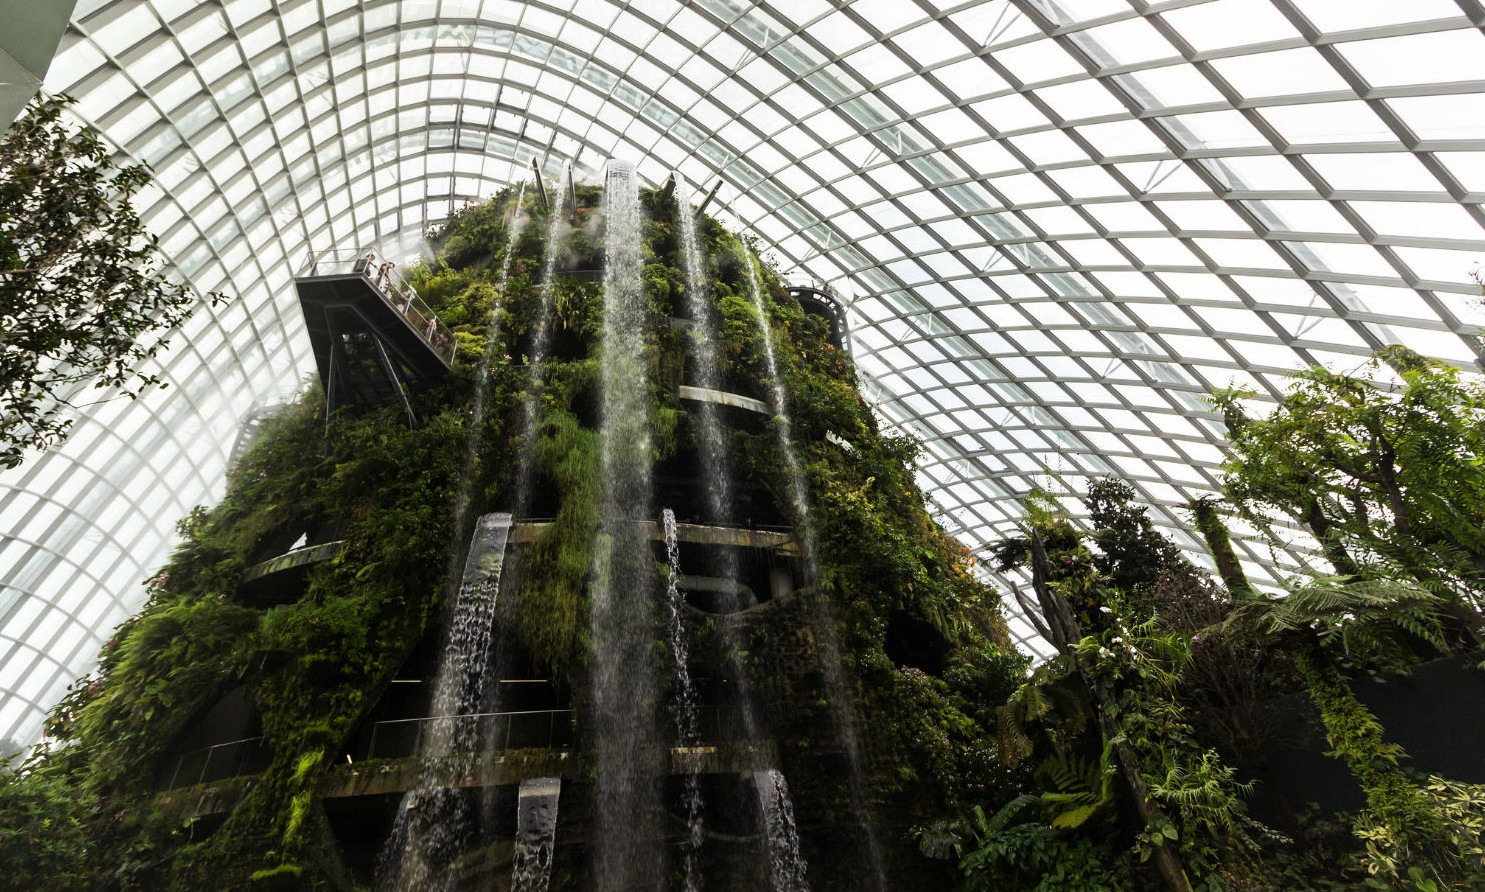 De 10 mooiste greenhouses ter wereld - Cloud Forest in Singapore